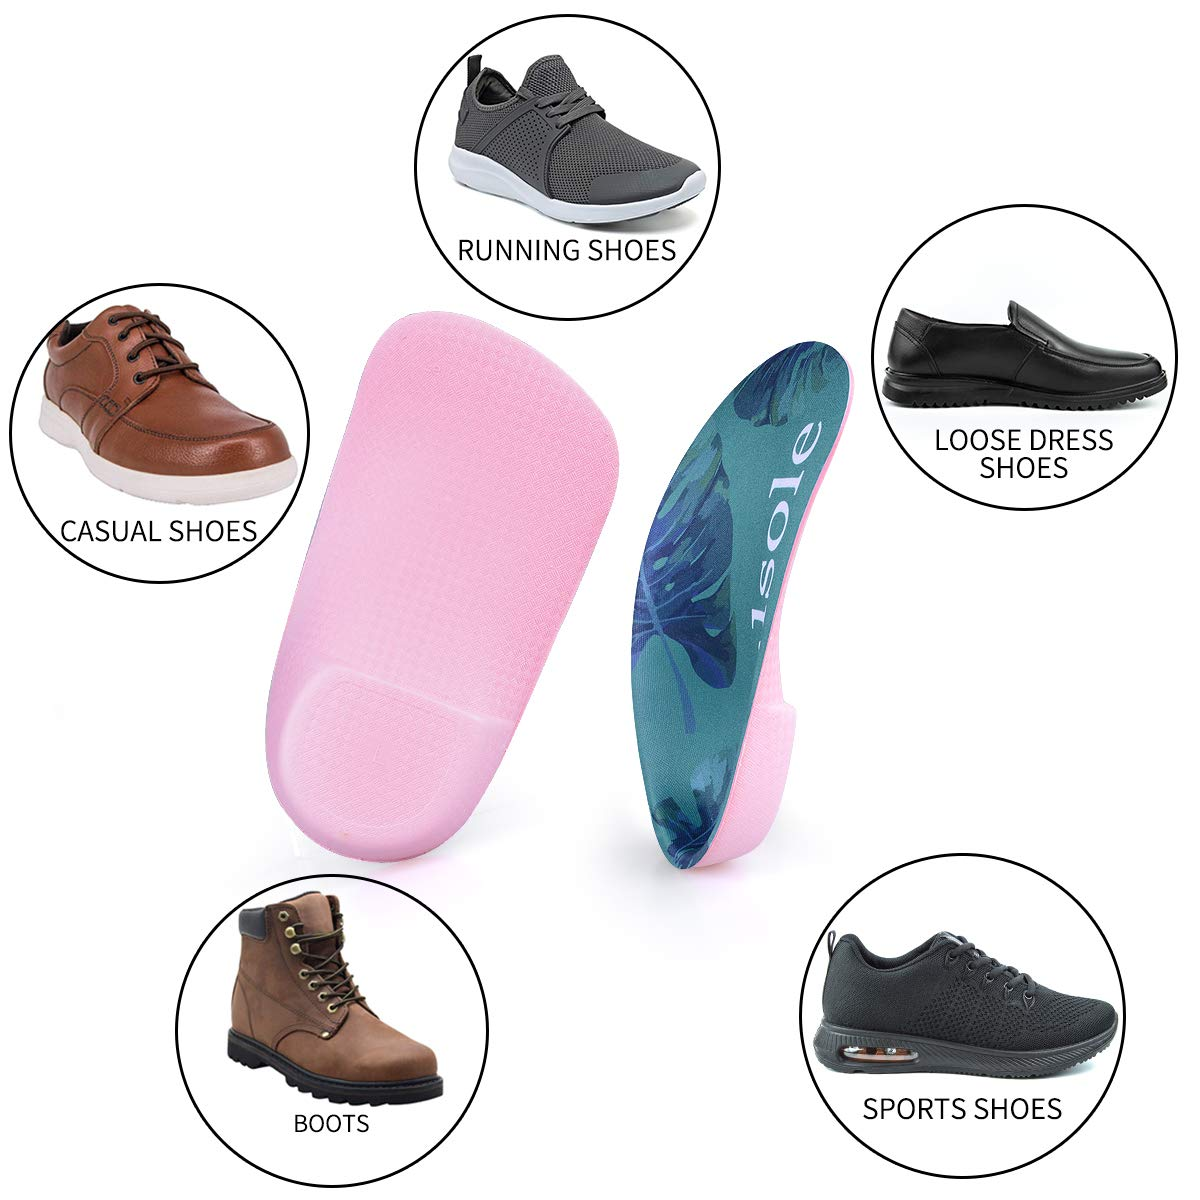 Heel Spurs V139a-green, Men9-11//Women10-12 Over-Pronation Valsole 3//4 Orthotics Shoe Insoles High Arch Supports and Deep Heel Cup Shoe Inserts Flat Feet Relief Plantar Fasciitis